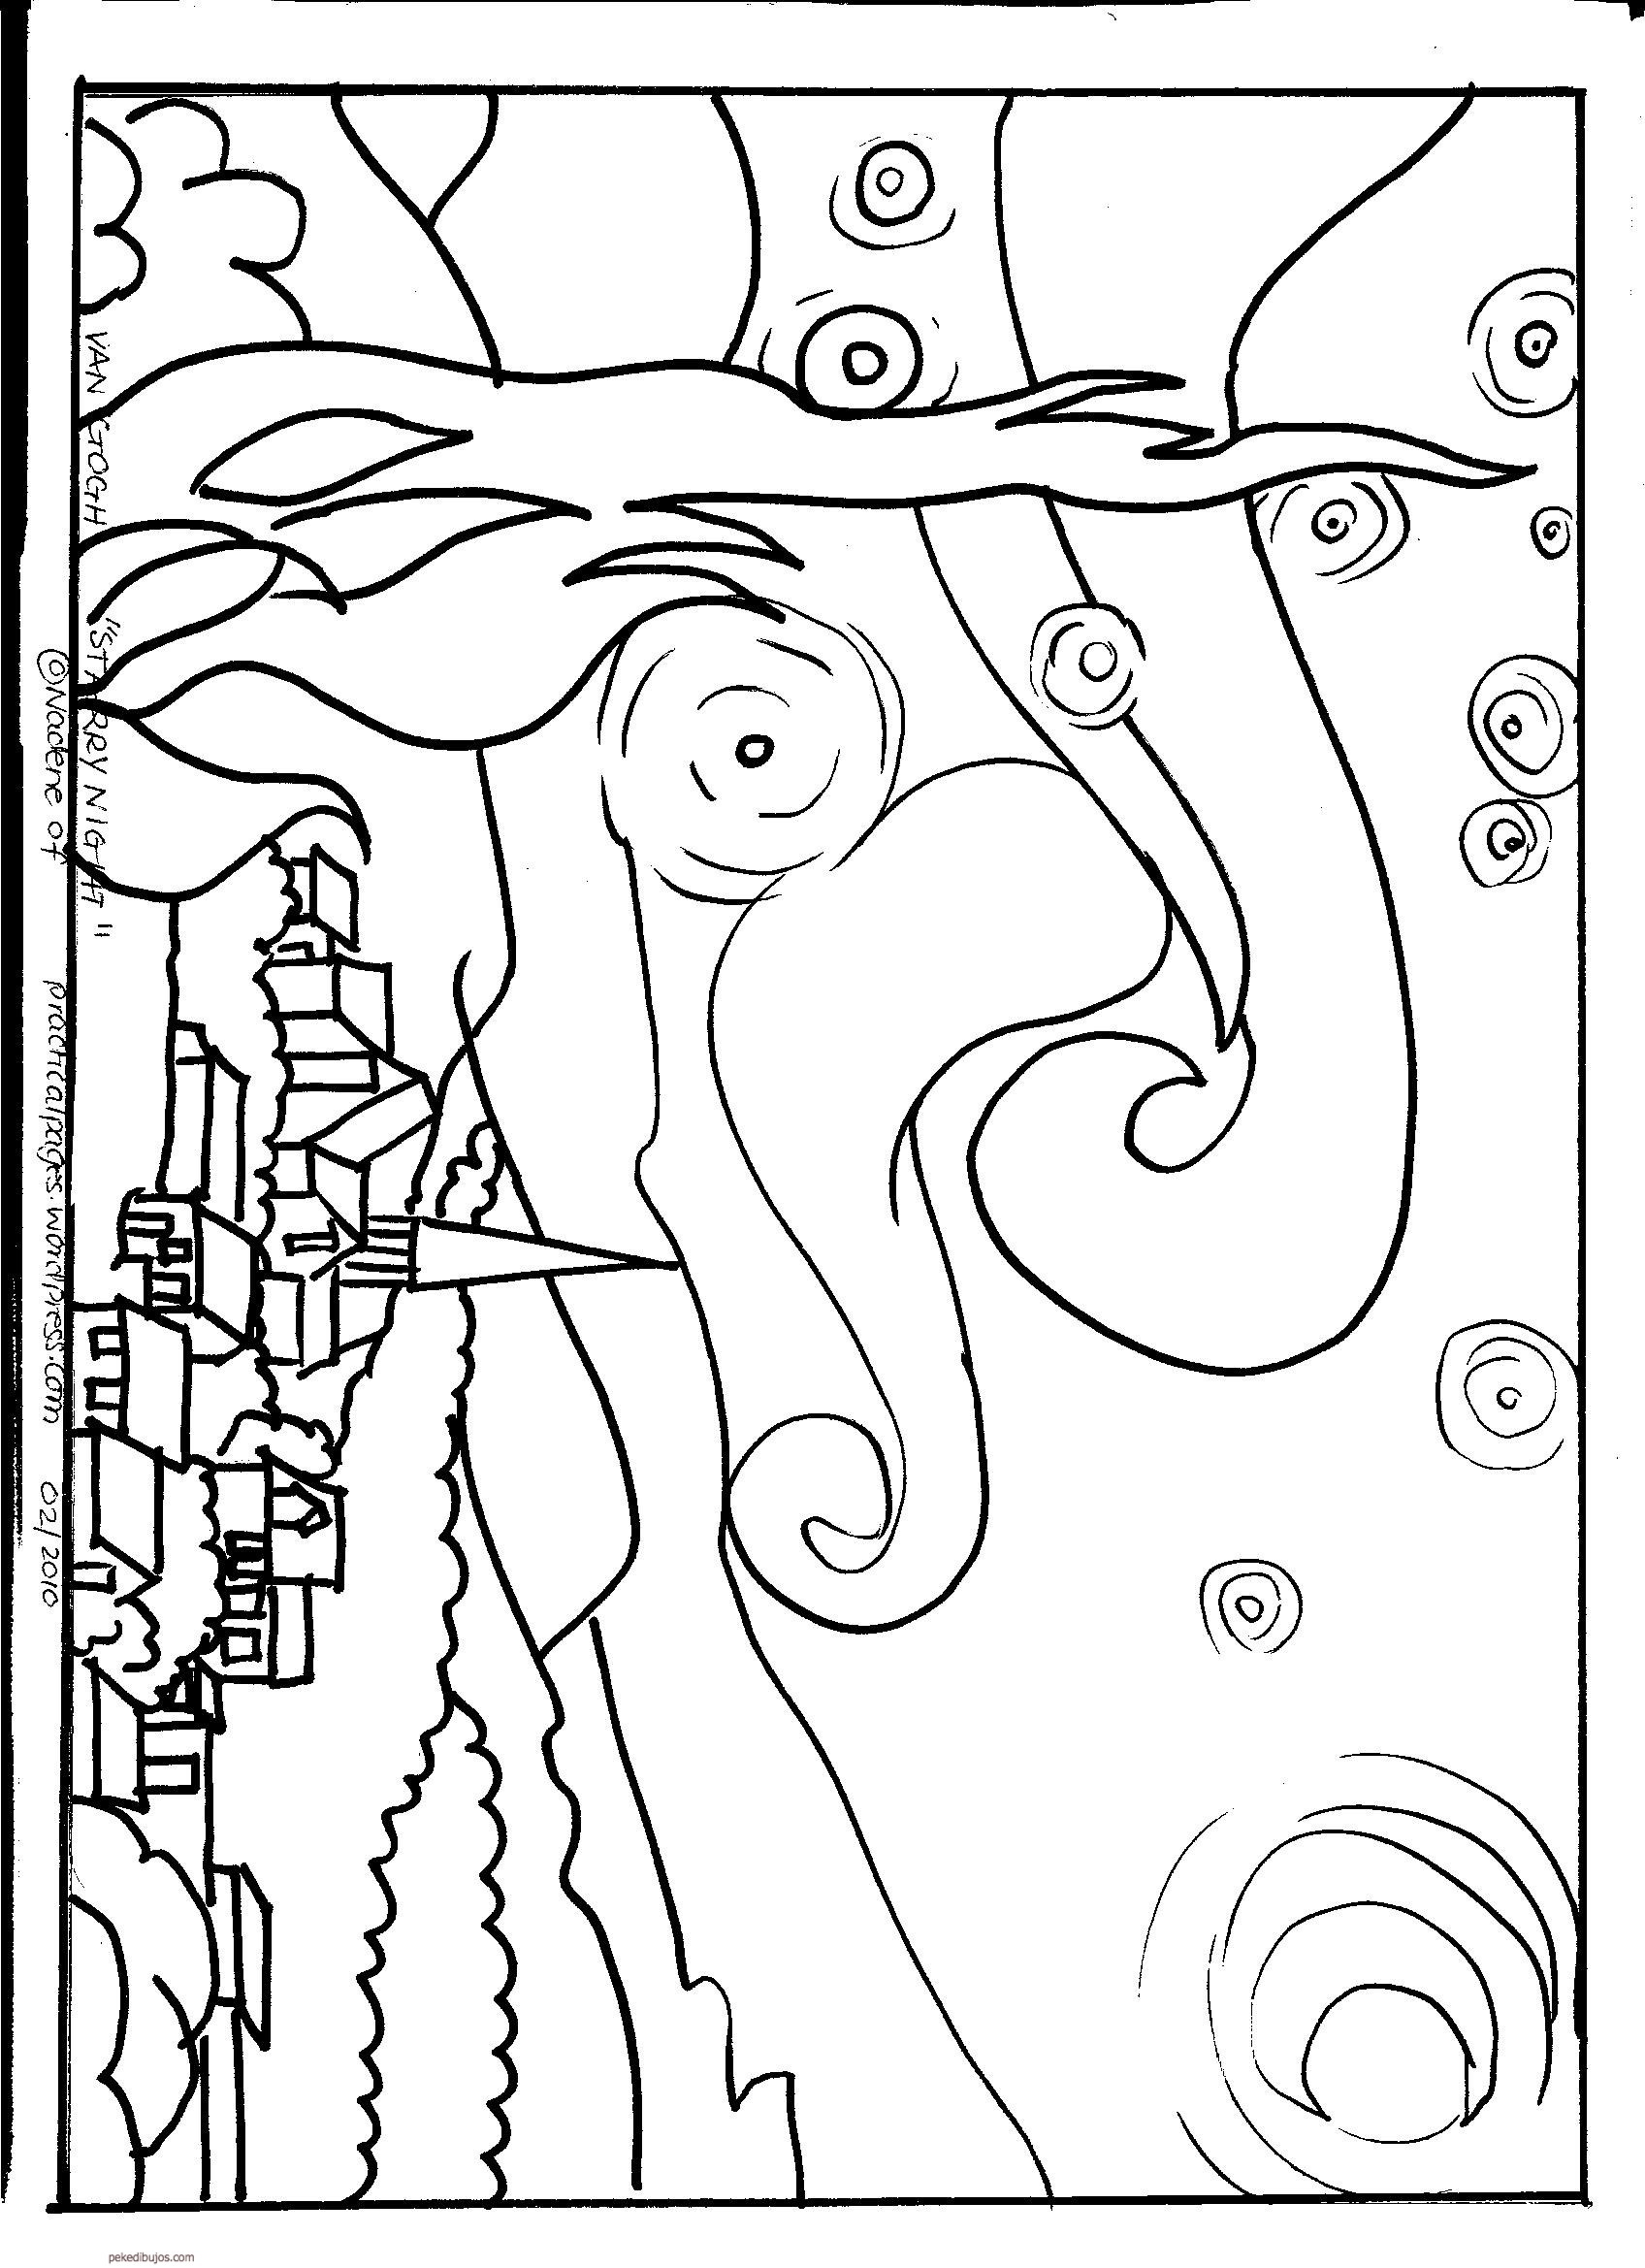 Colorear Cuadros Famosos Frida Kahlo Coloring Pages Sketch Coloring Page Auto Electrical